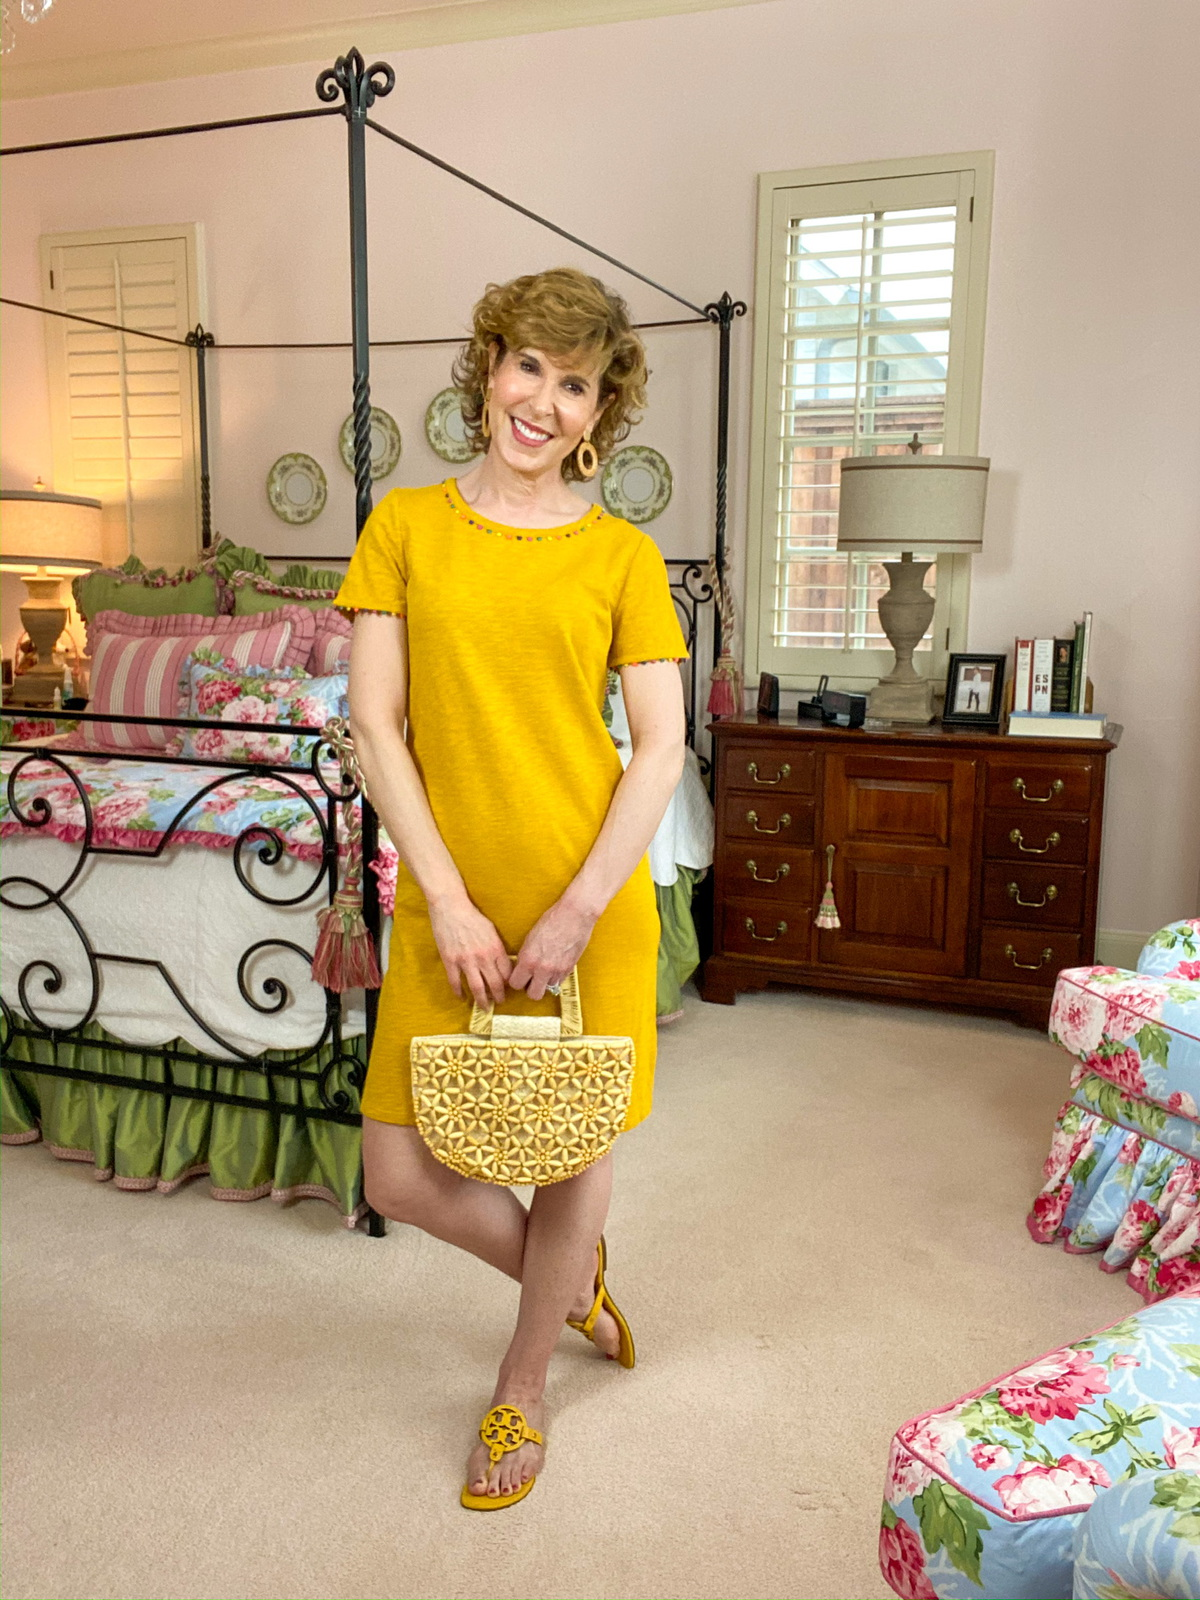 woman over 50 wearing yellow tee shirt dress standing in colorful bedroom